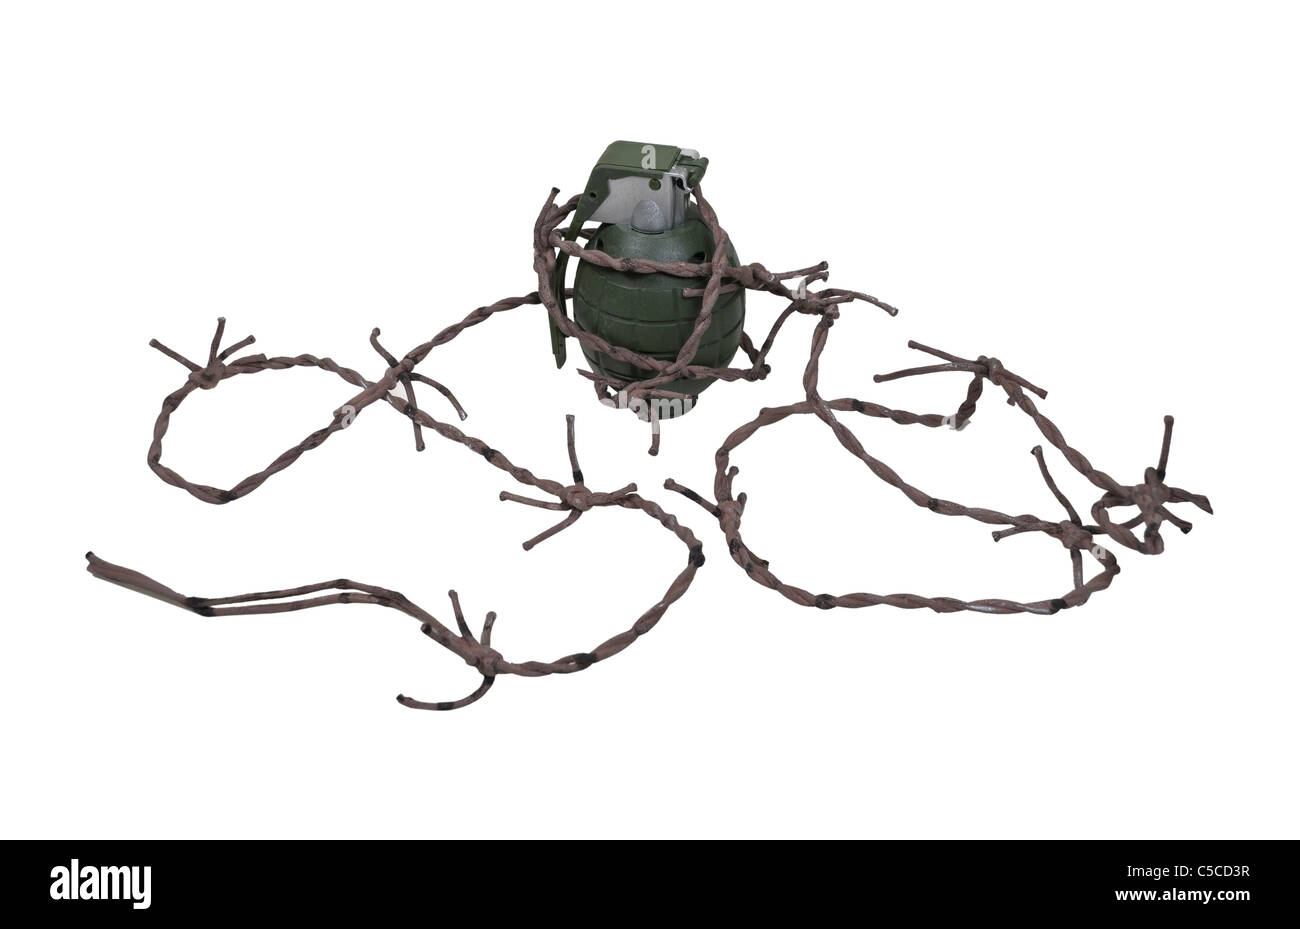 Green retro military grenade for blowing up things wrapped in barbed wire - path included - Stock Image